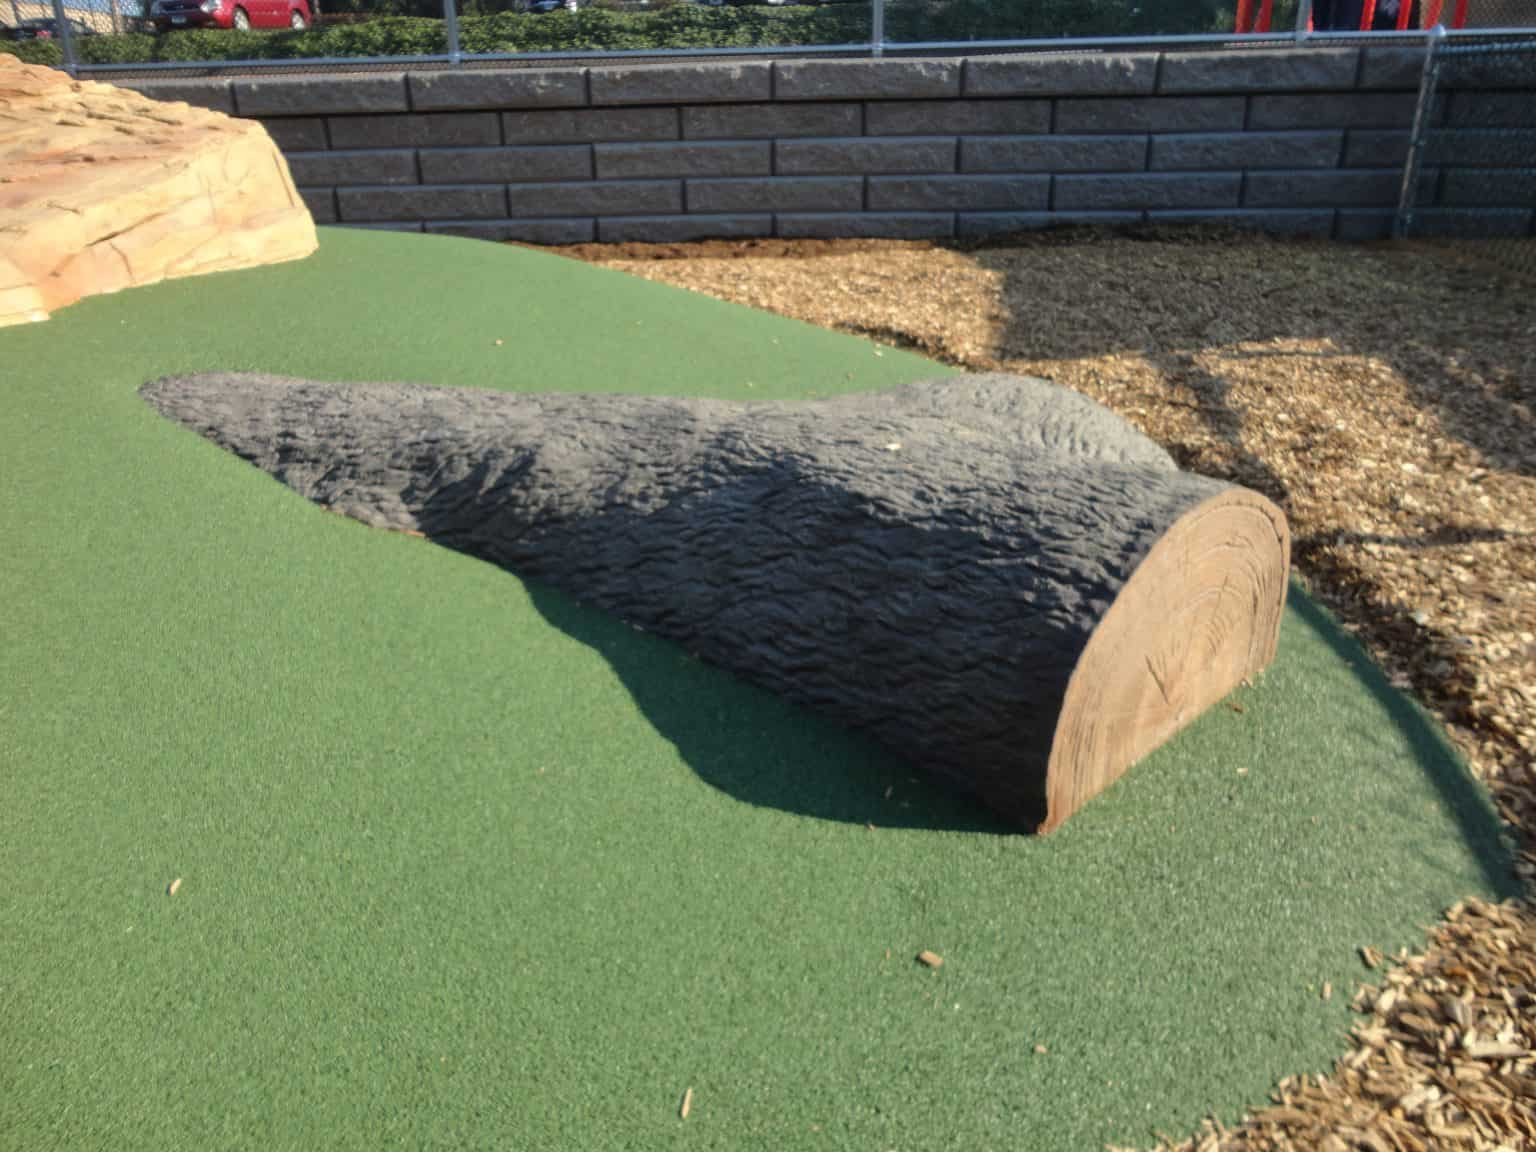 phyllis-bodel-daycare-playground-new-haven-ct_18101054296_o-1536x1152